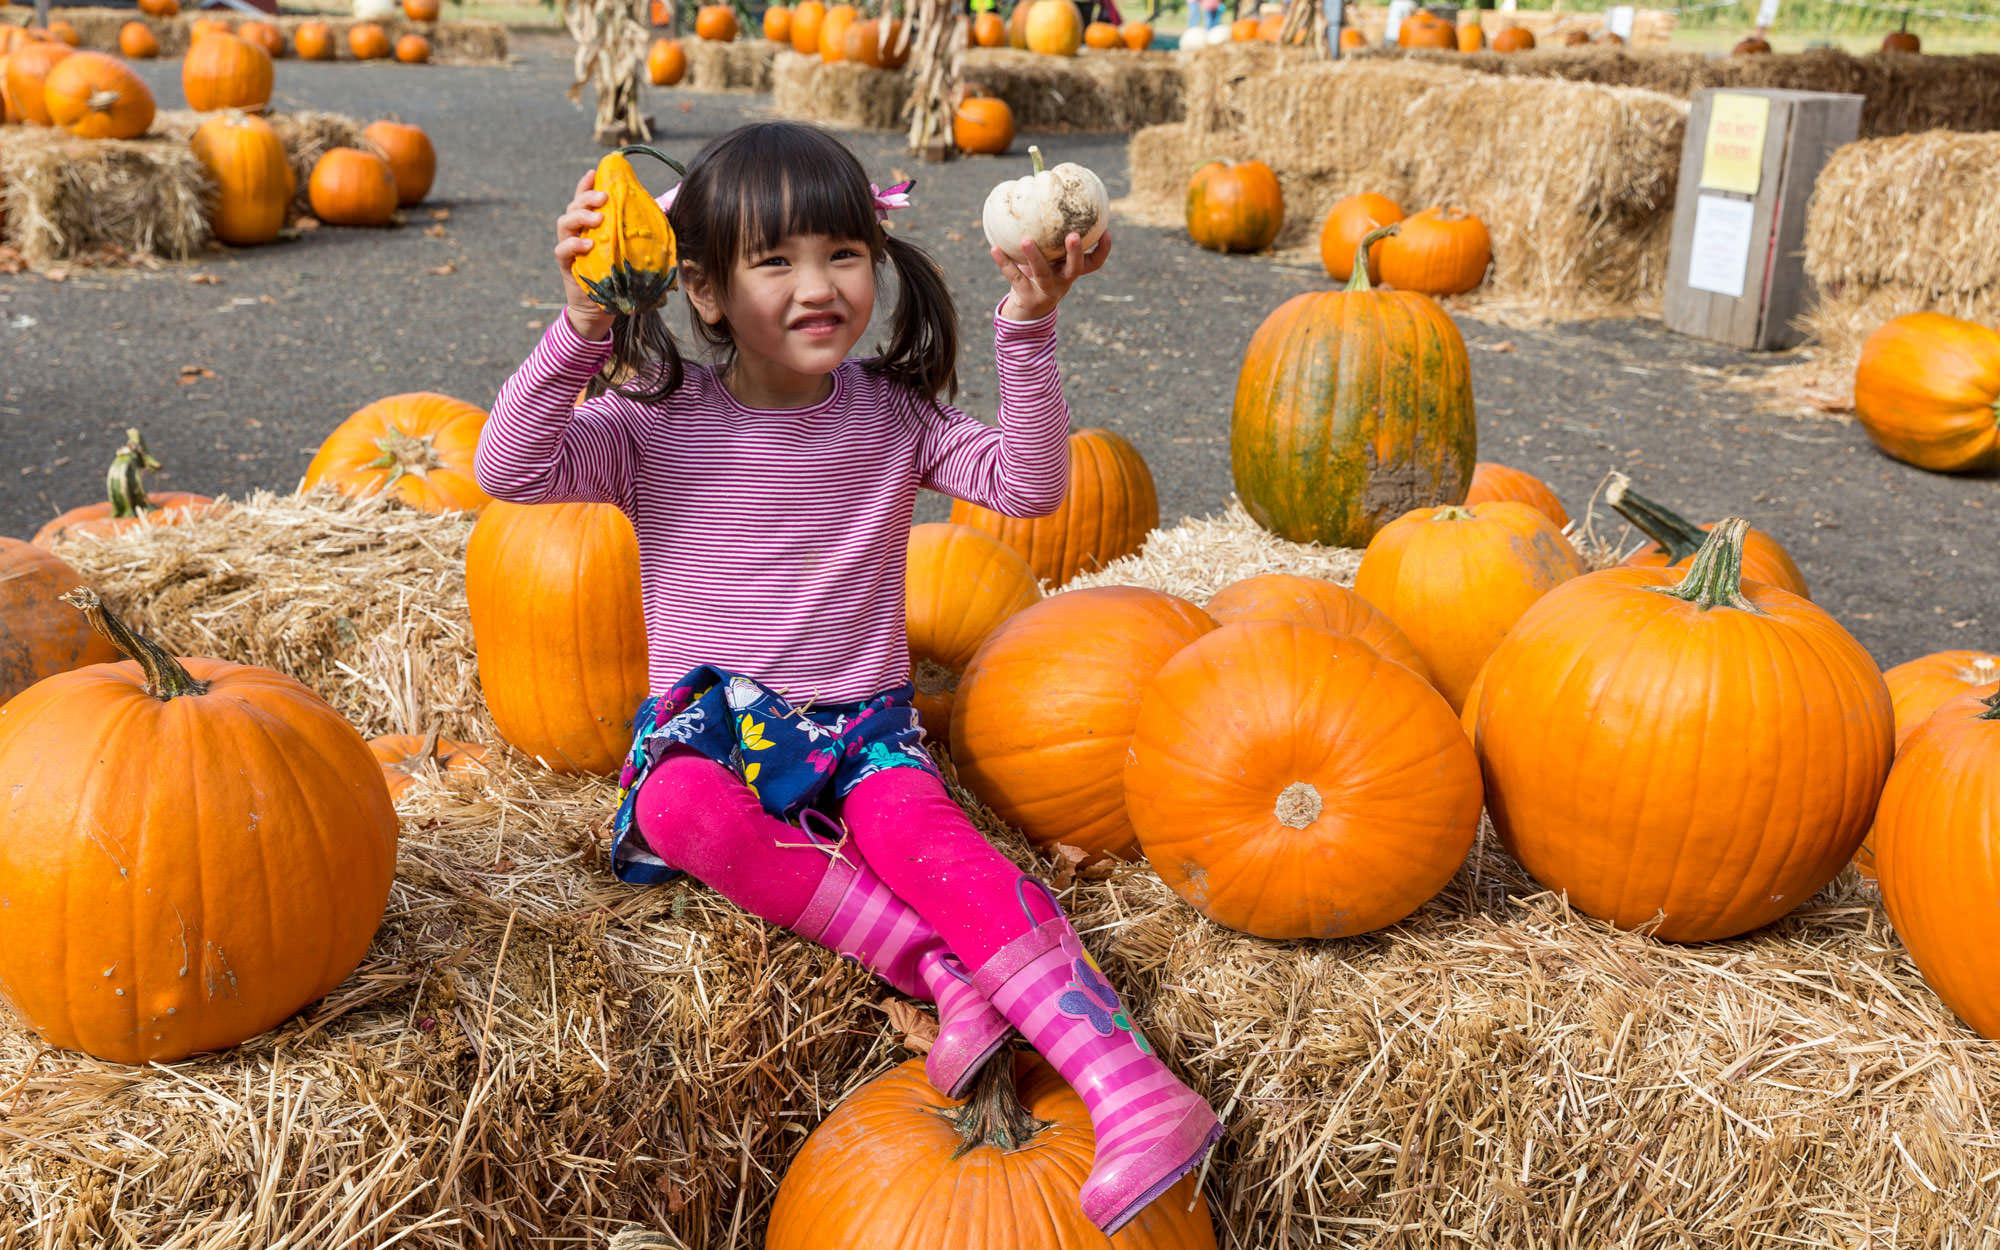 A little girl holds up small pumpkins as she sits on hay piles surrounded by large orange pumpkins.